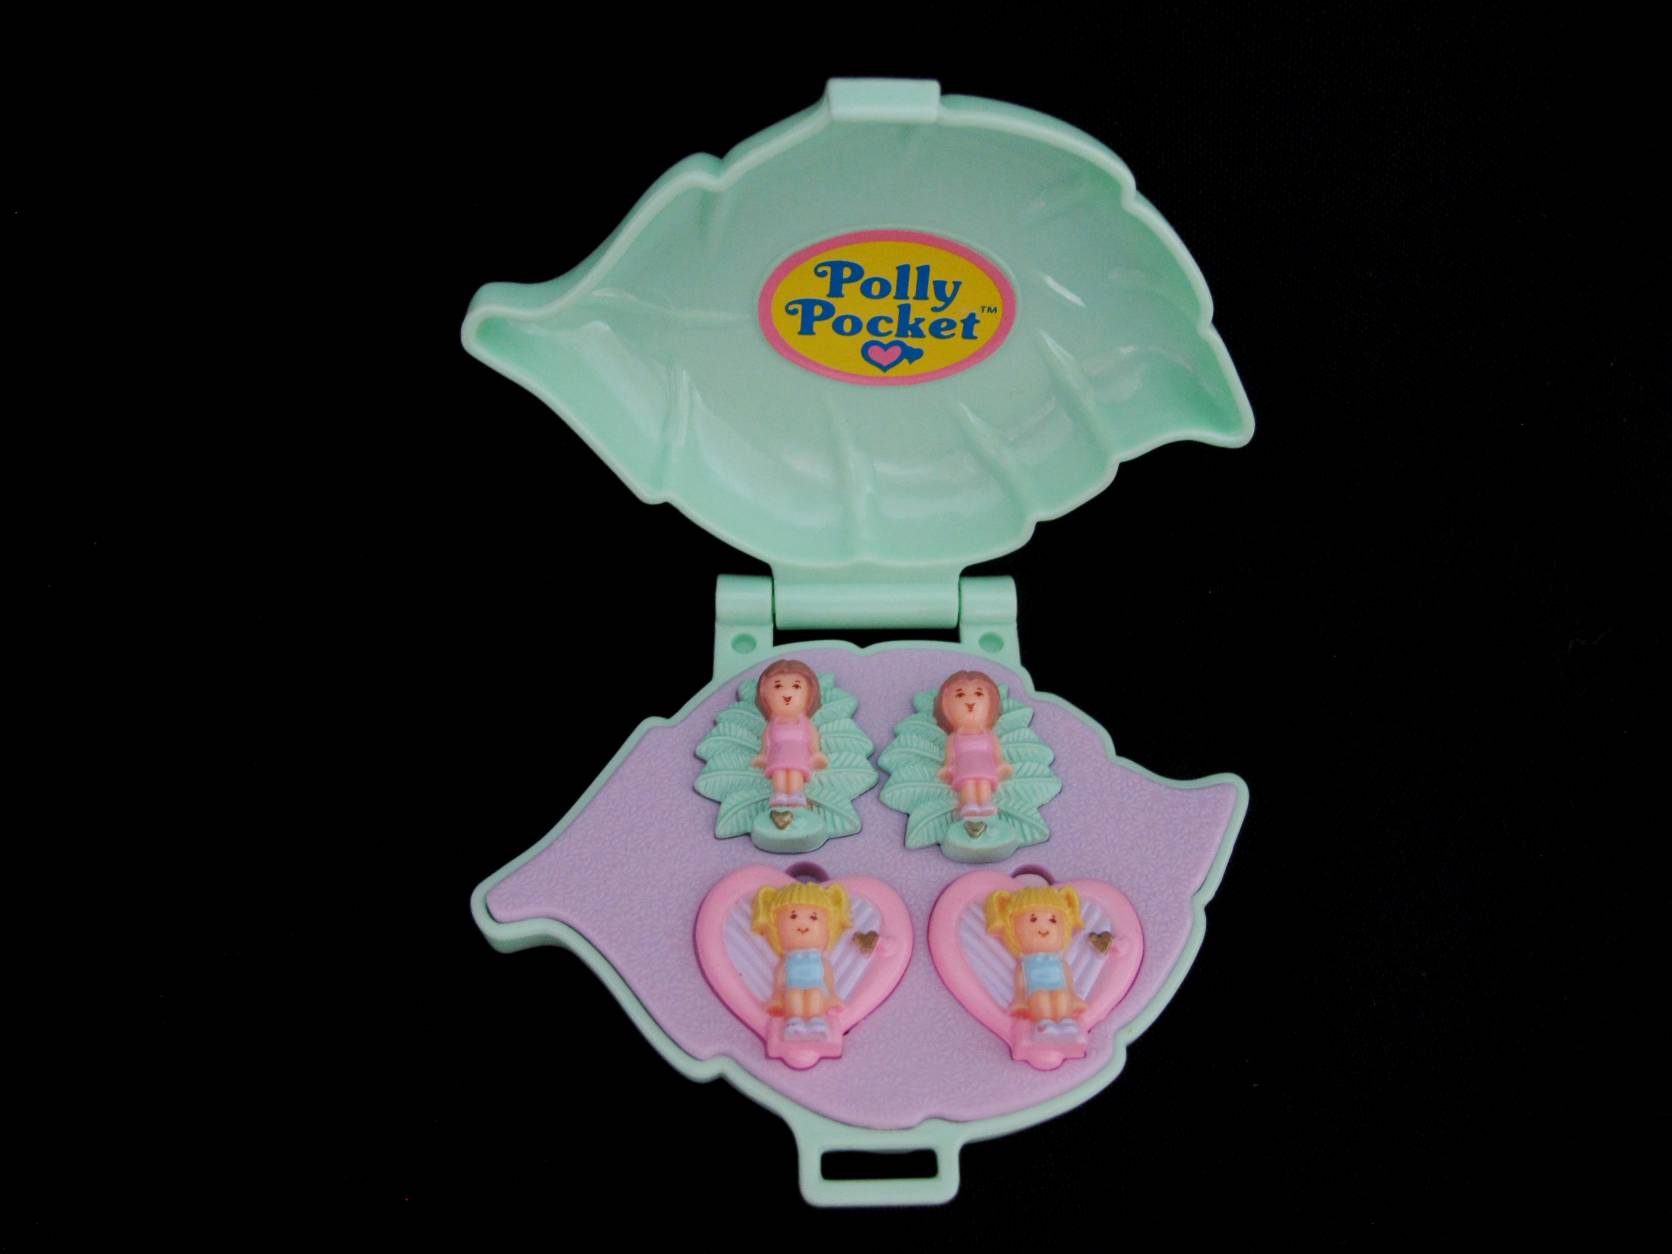 1991 Earring case Polly Pocket 2